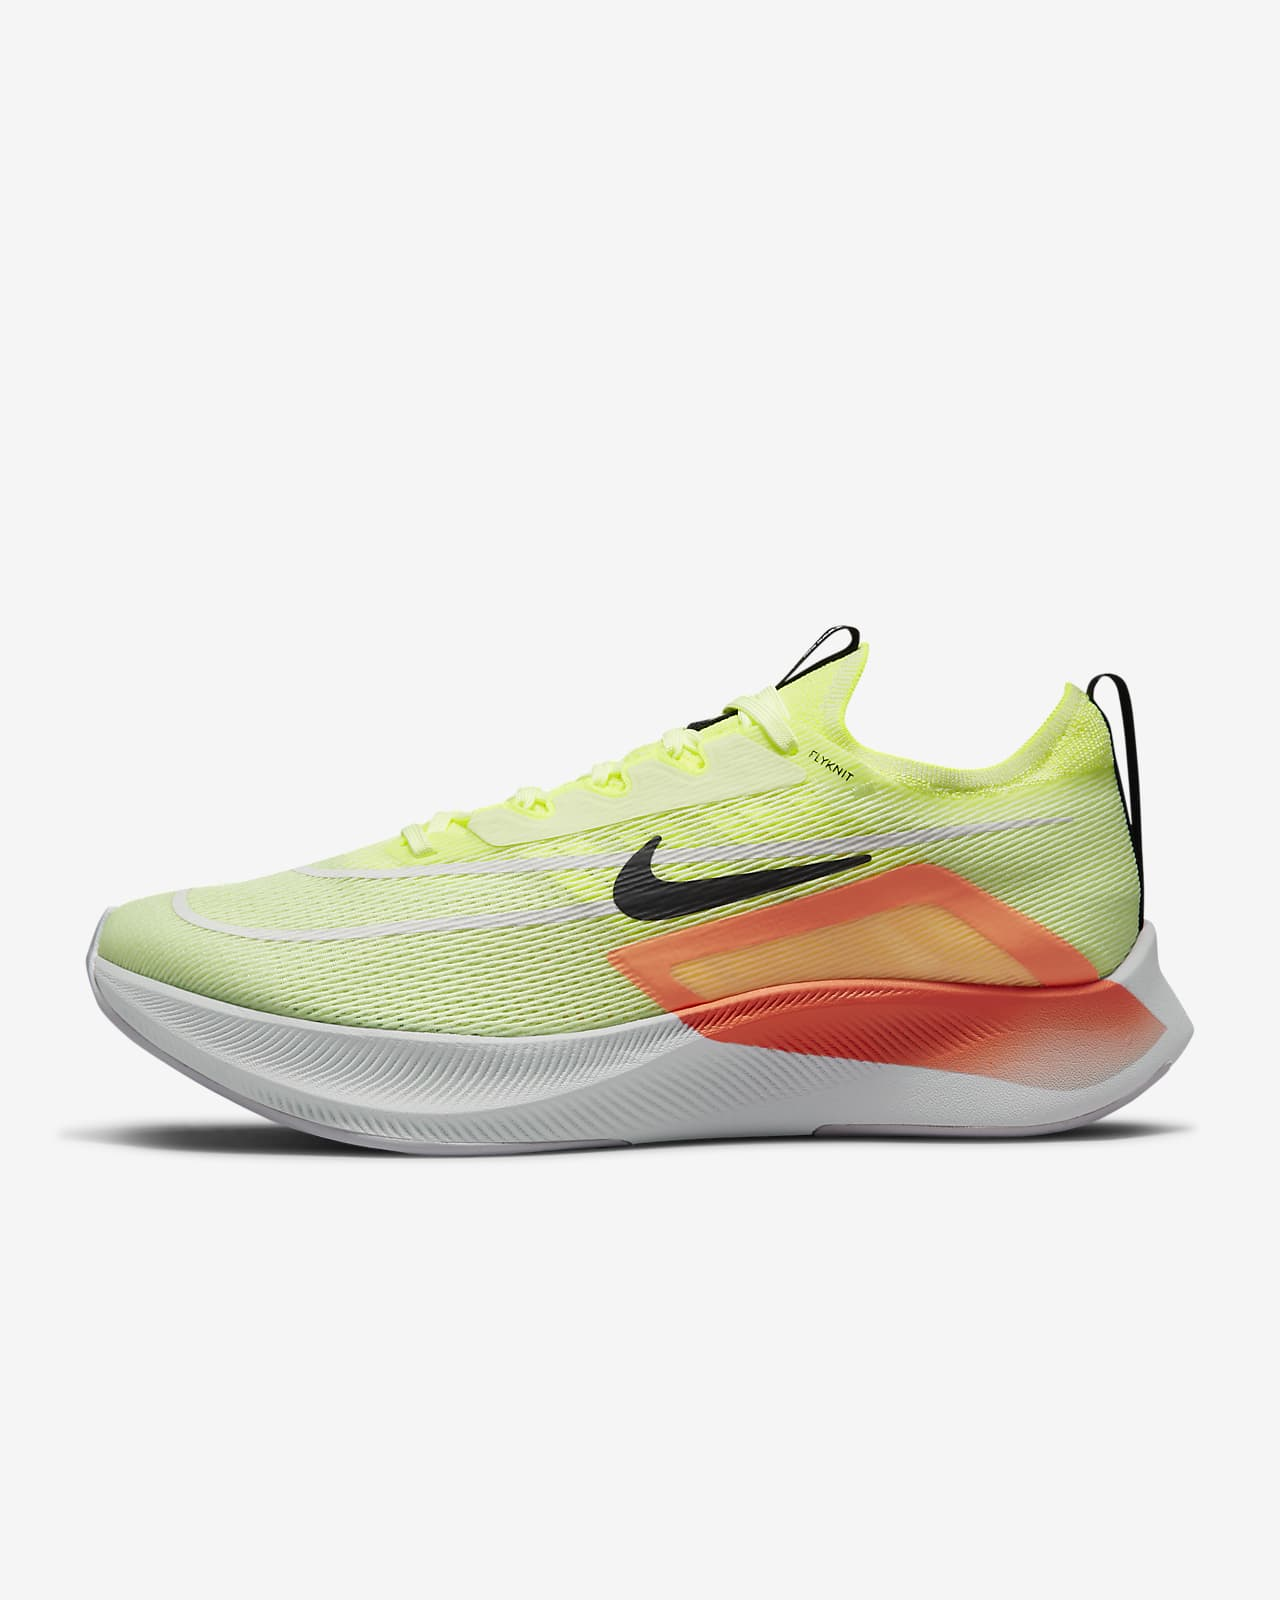 Nike Zoom Fly 4 Men's Road Running Shoes